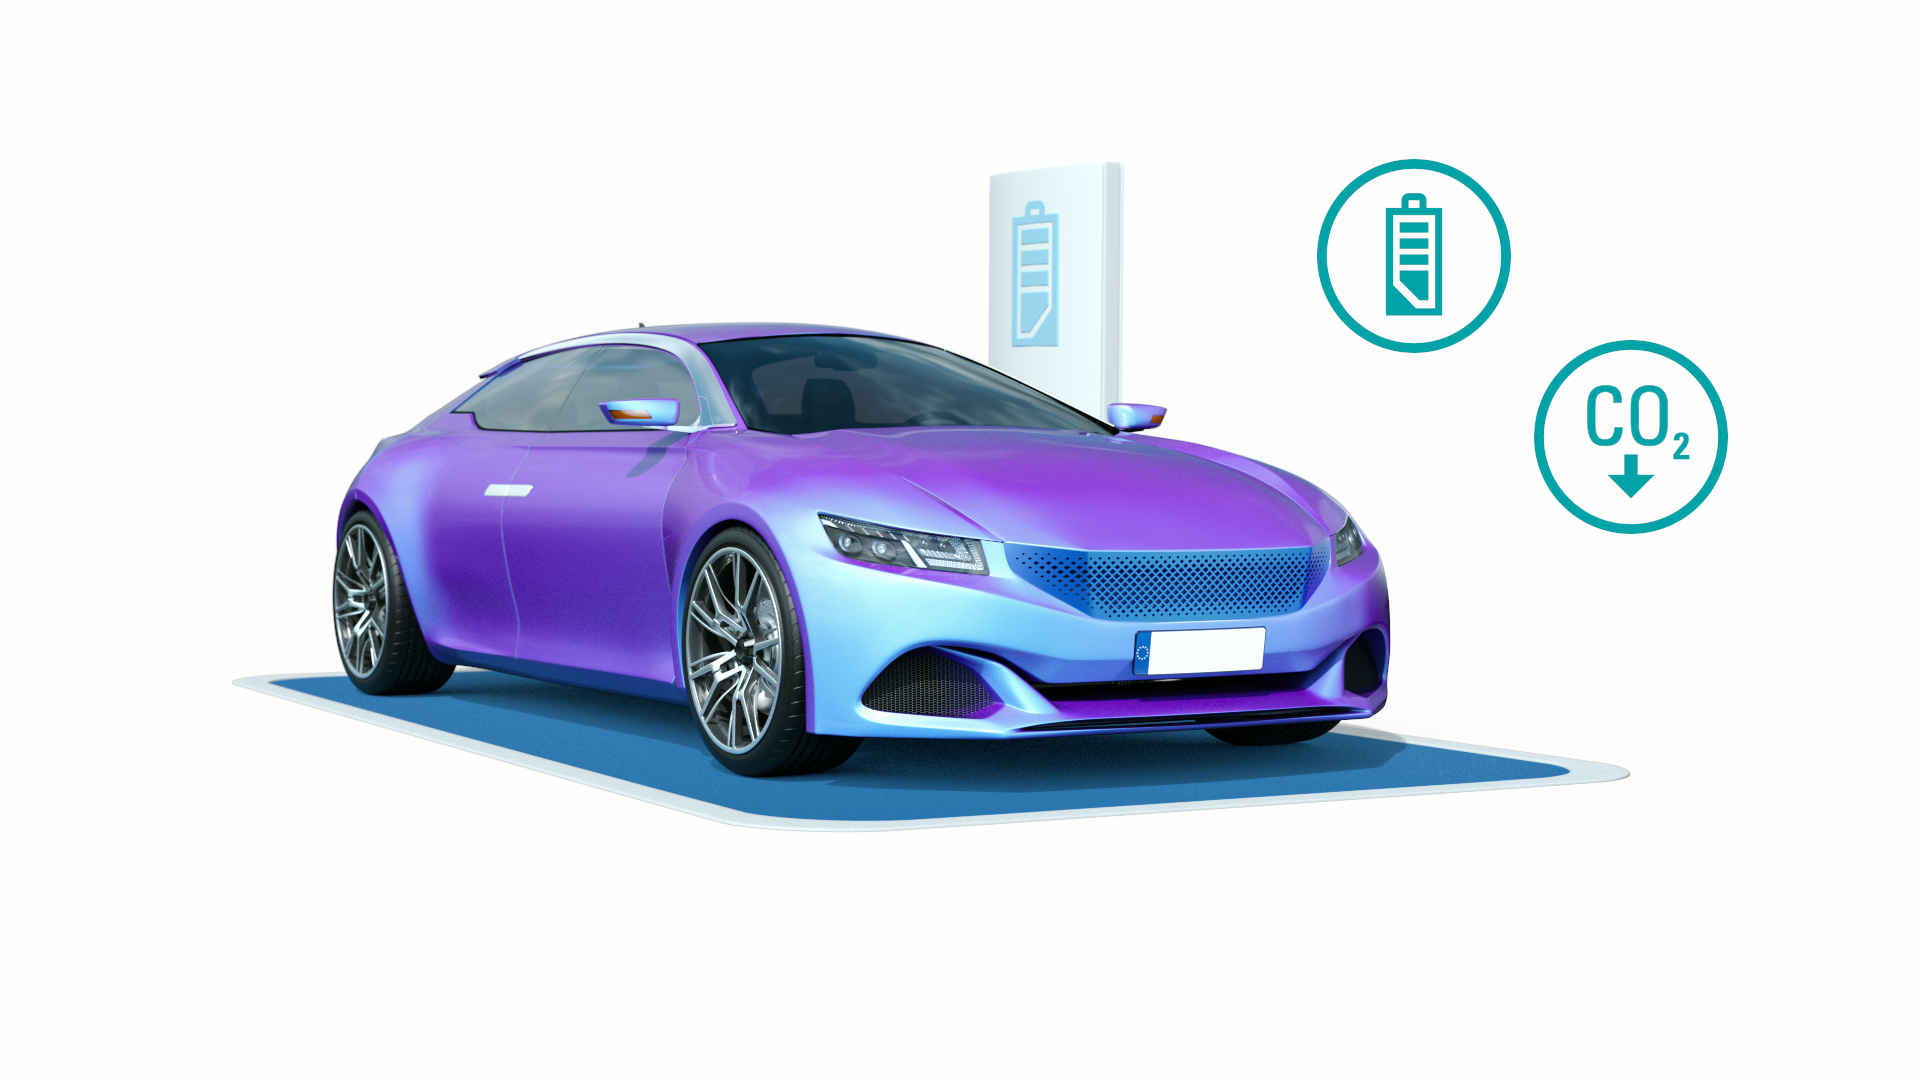 rapid electrification: understanding and controlling power use in electric vehicle systems